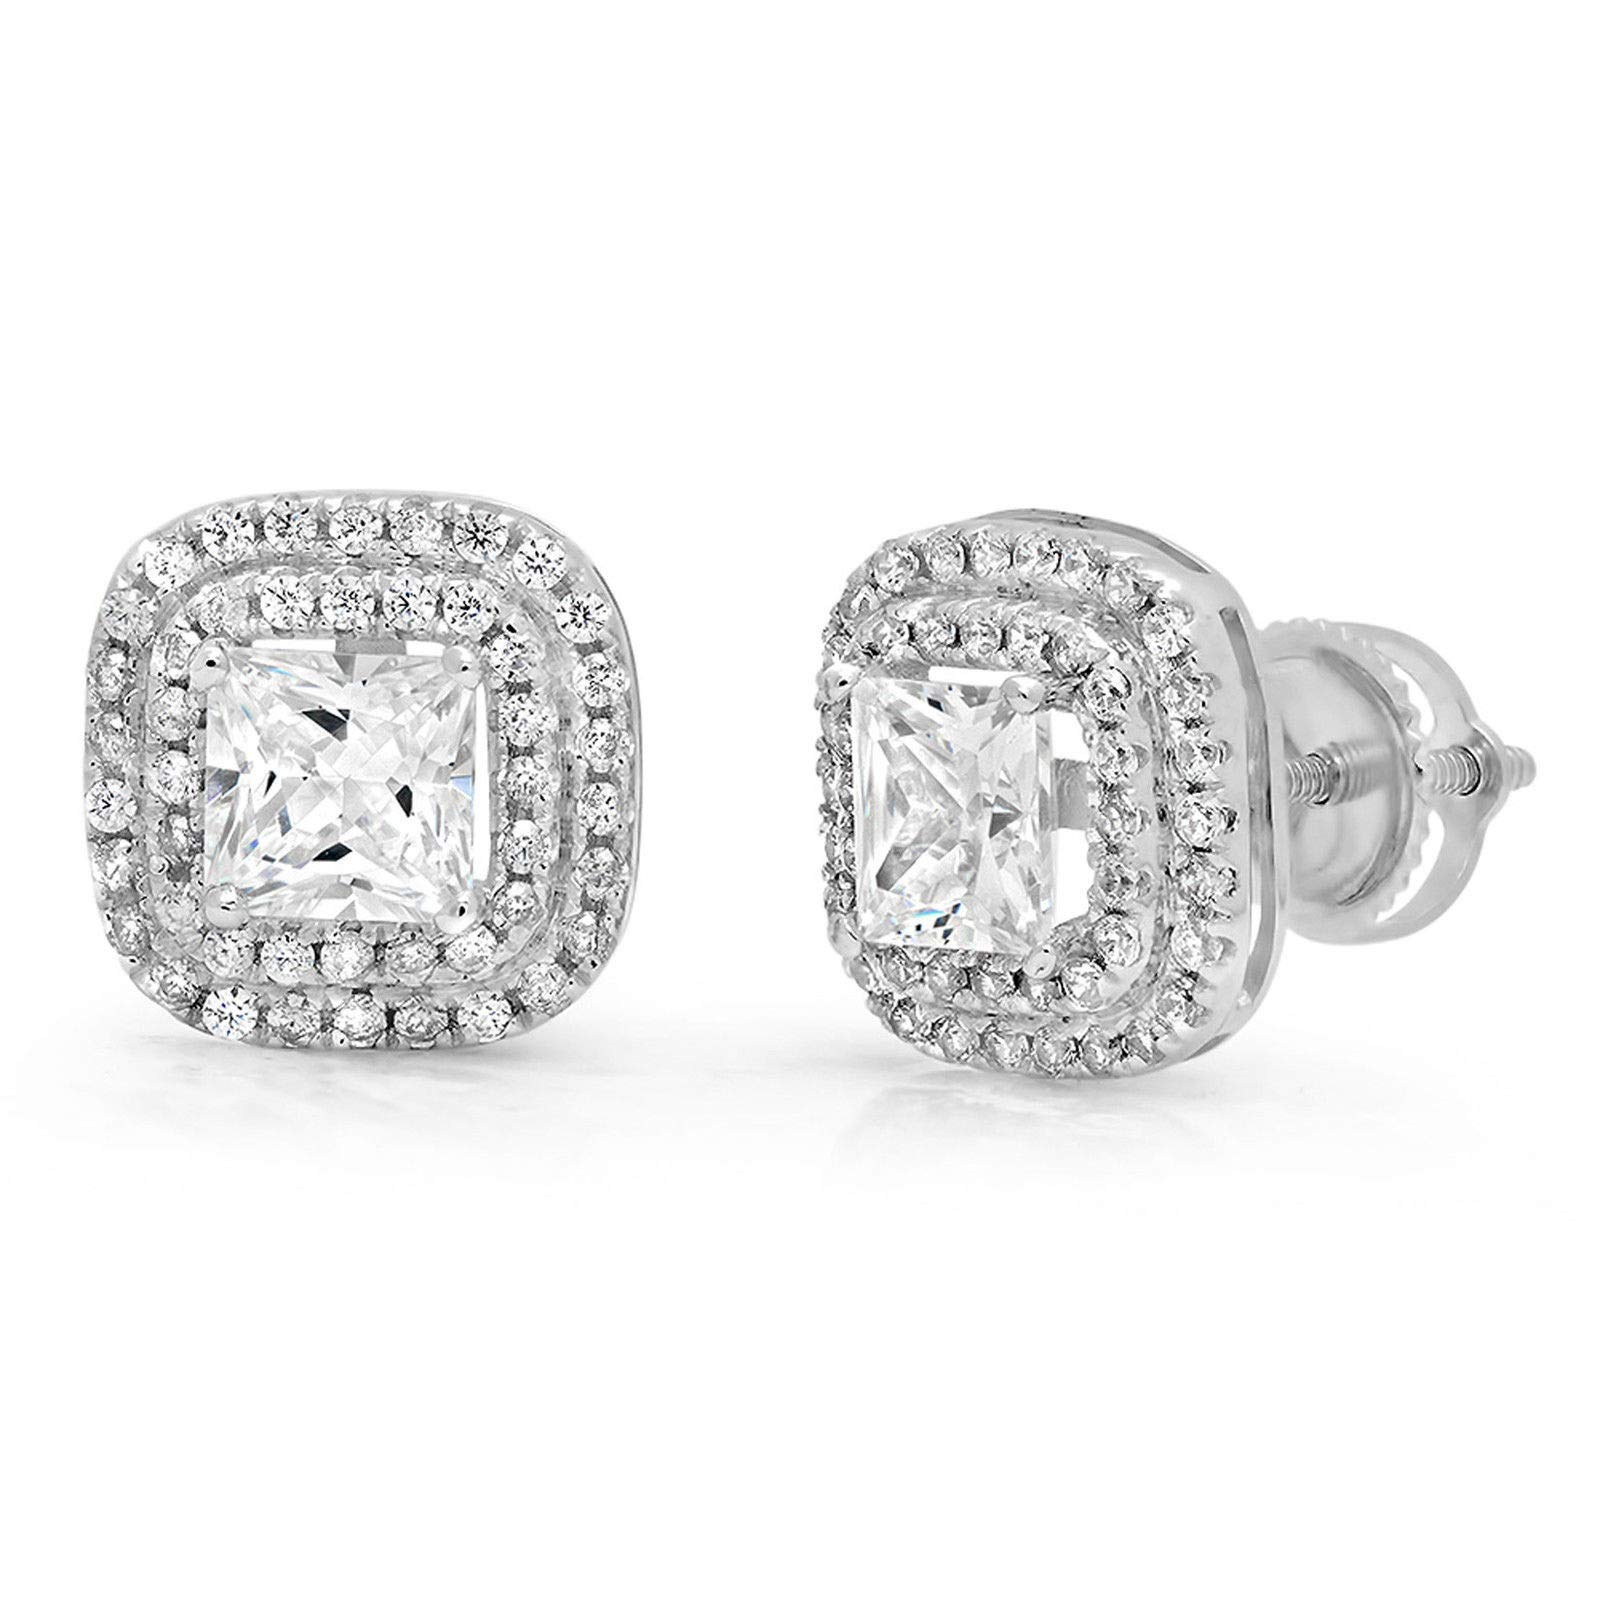 2.89ct Brilliant Princess Round Cut Double Halo Solitaire Highest Quality Moissanite & Simulated Diamond Unisex Anniversary Gift Solitaire Stud Screw Back Earrings Real Solid 14k White Gold